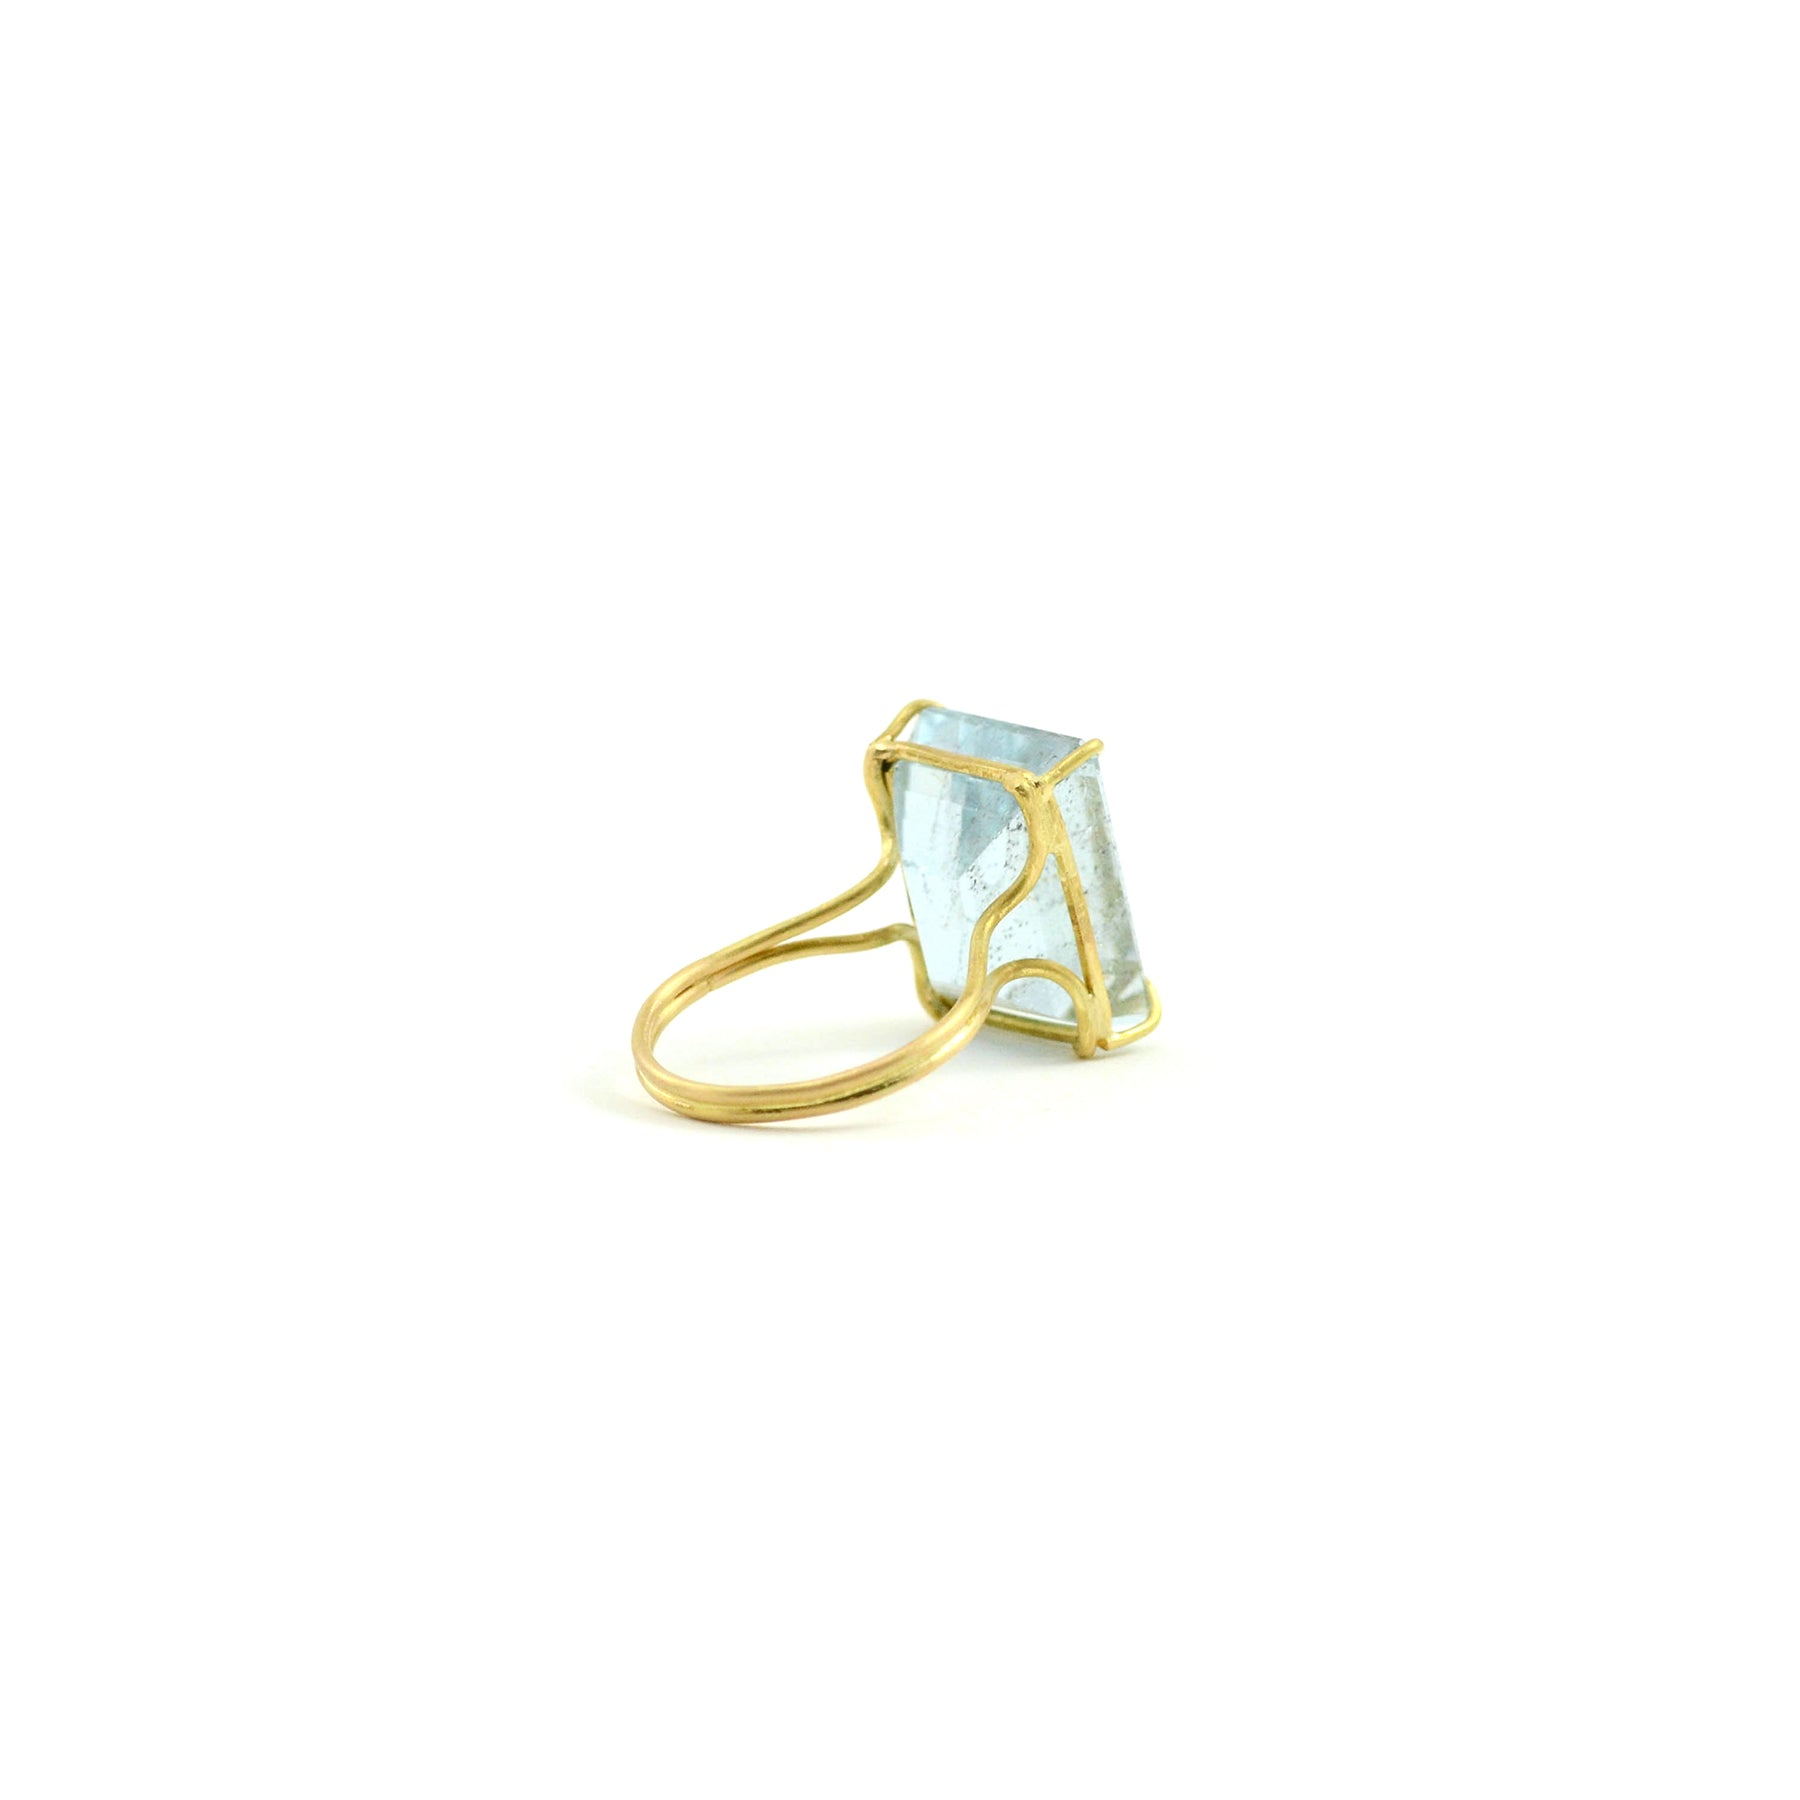 Emerald Cut Aquamarine Ring